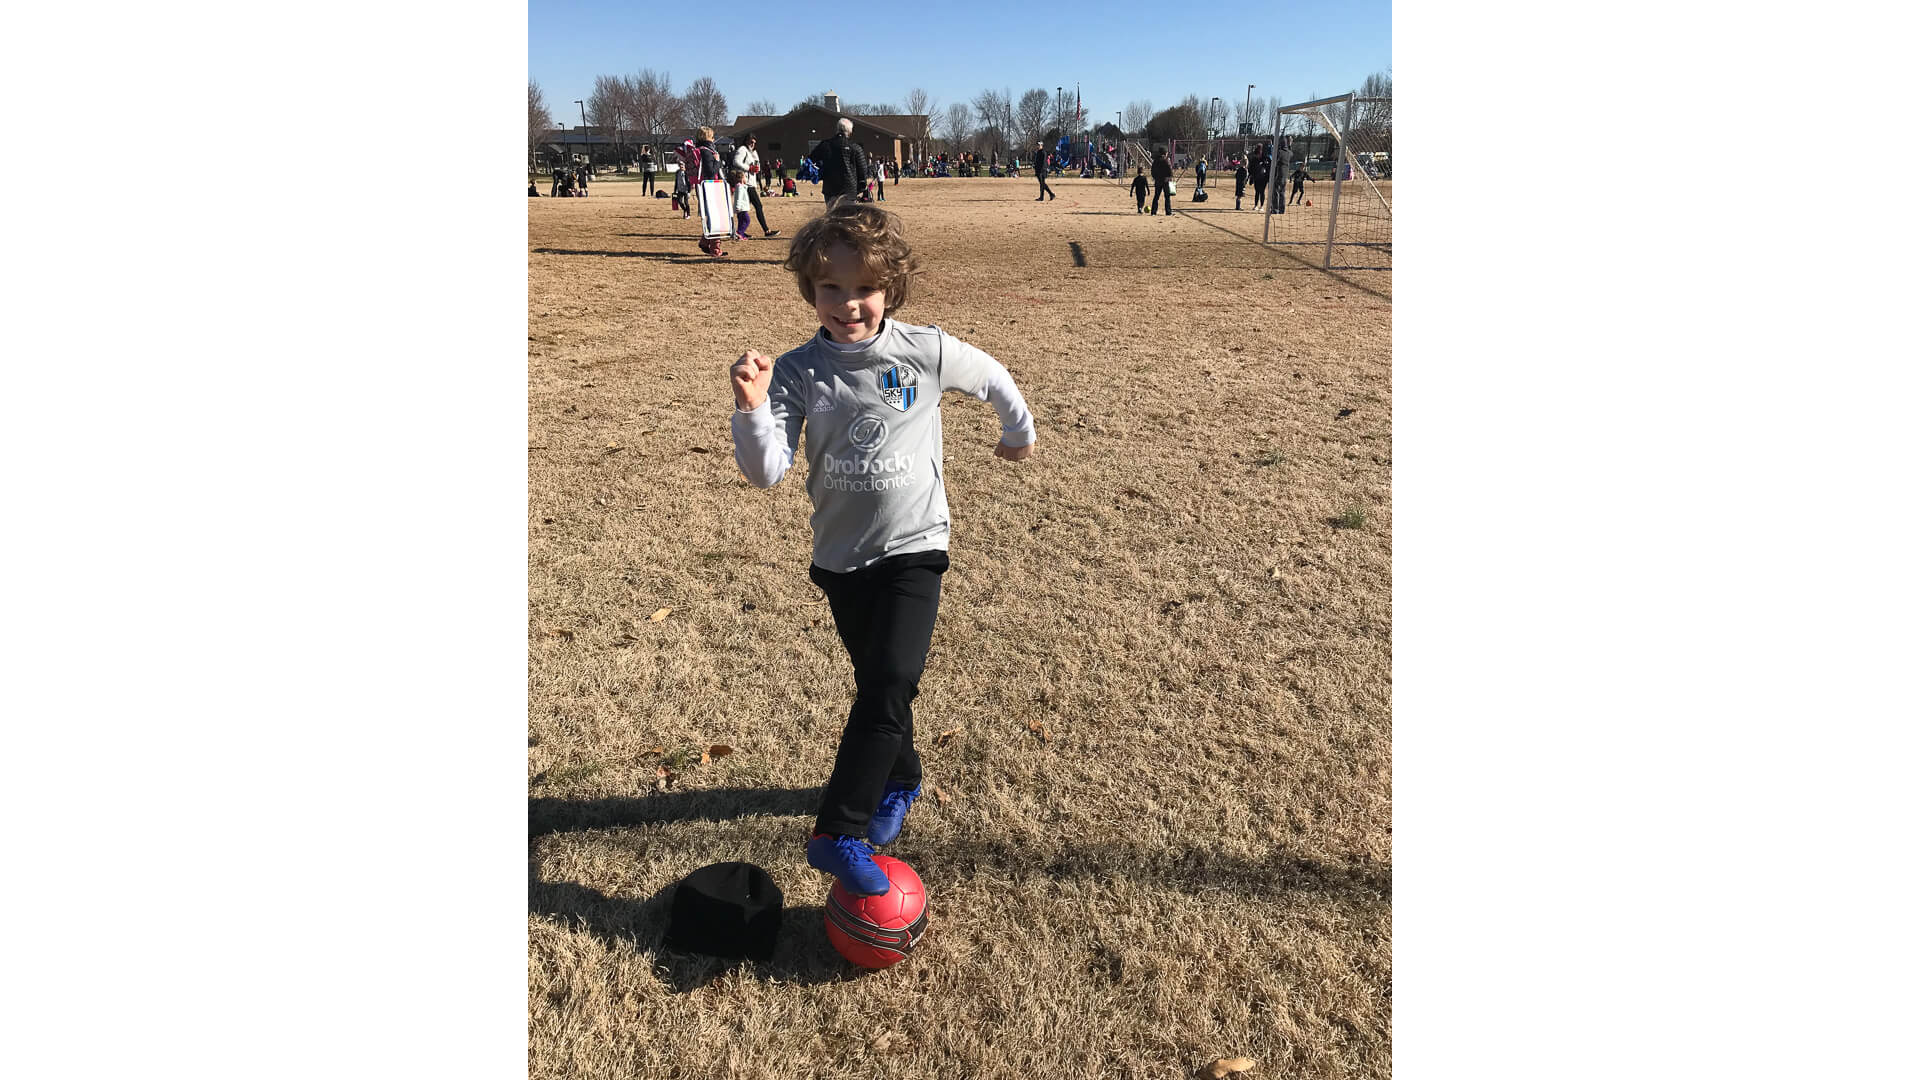 Cameron Huddleston son playing soccer in the park